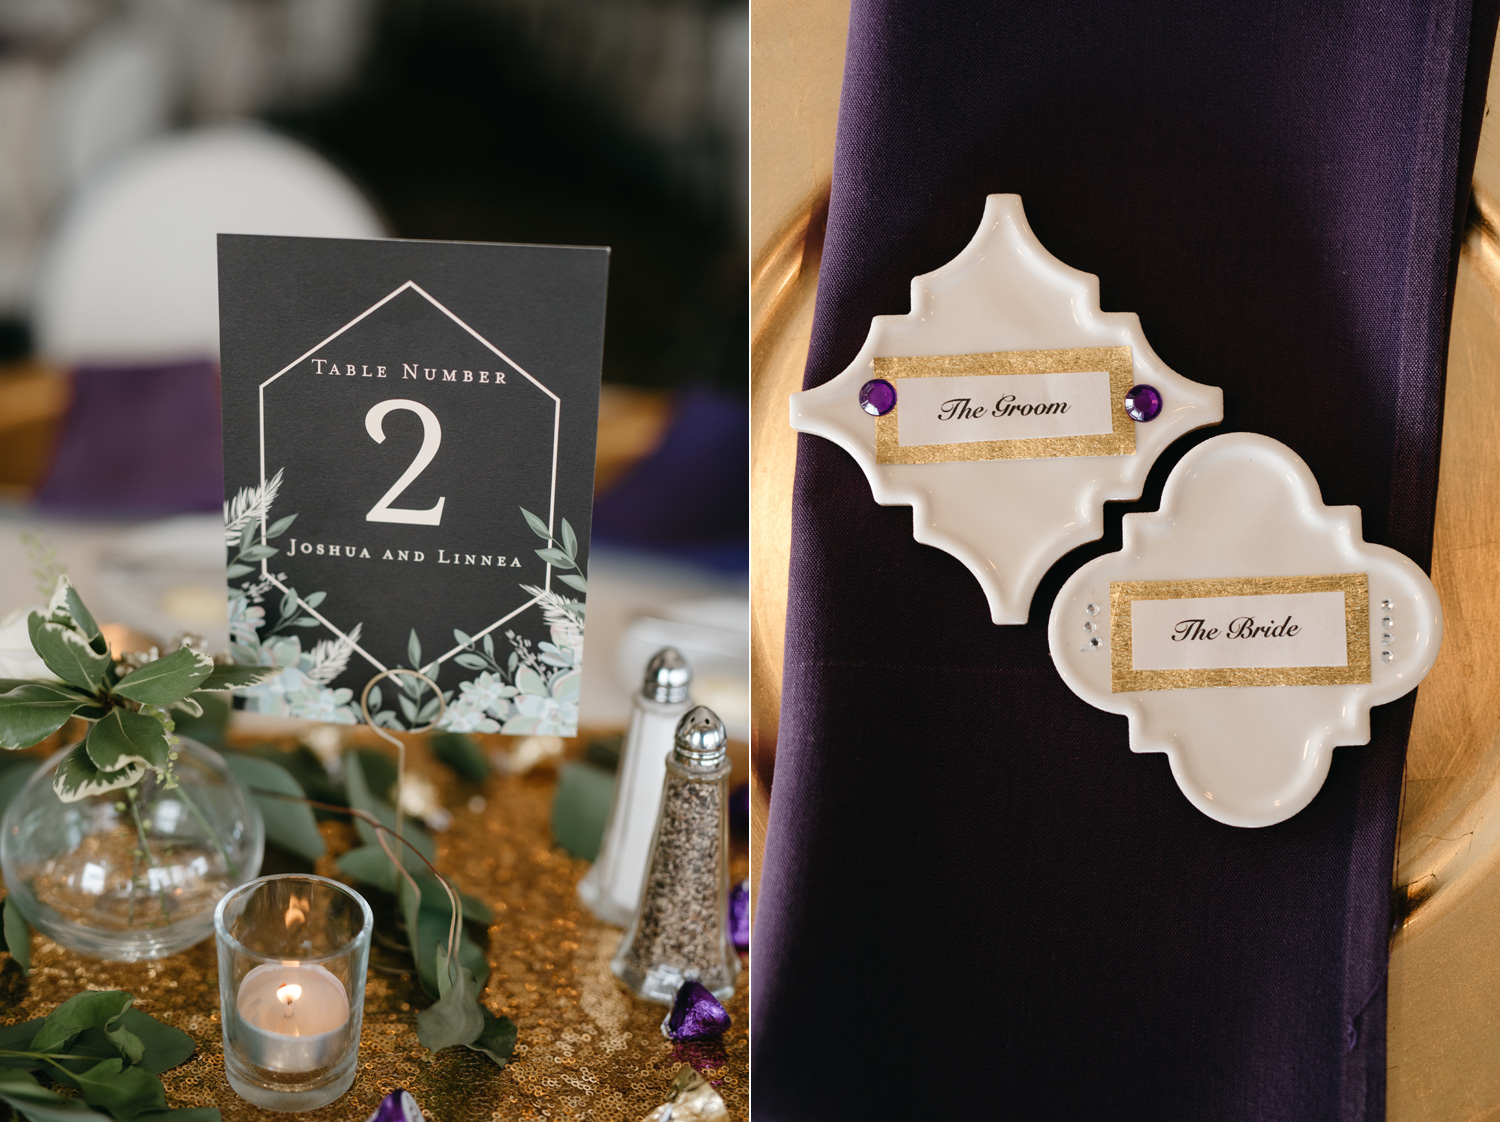 Wedding reception details place cards and table numbers